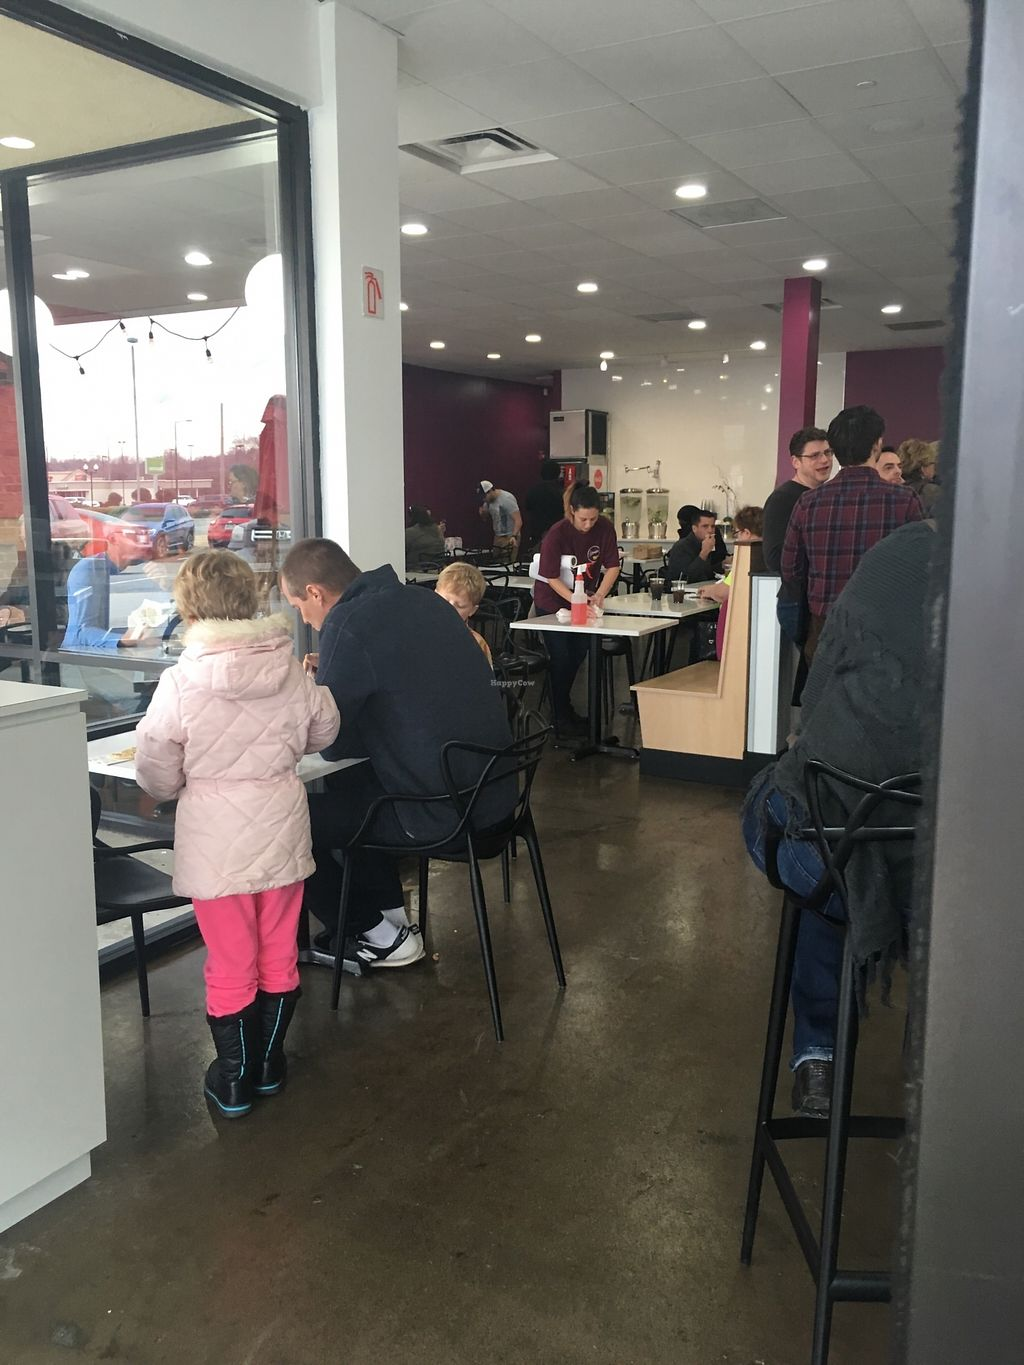 "Photo of Yassin's Falafel House - N Peters Rd  by <a href=""/members/profile/AlexandraPhillips"">AlexandraPhillips</a> <br/>Inside  <br/> January 28, 2018  - <a href='/contact/abuse/image/110576/351686'>Report</a>"